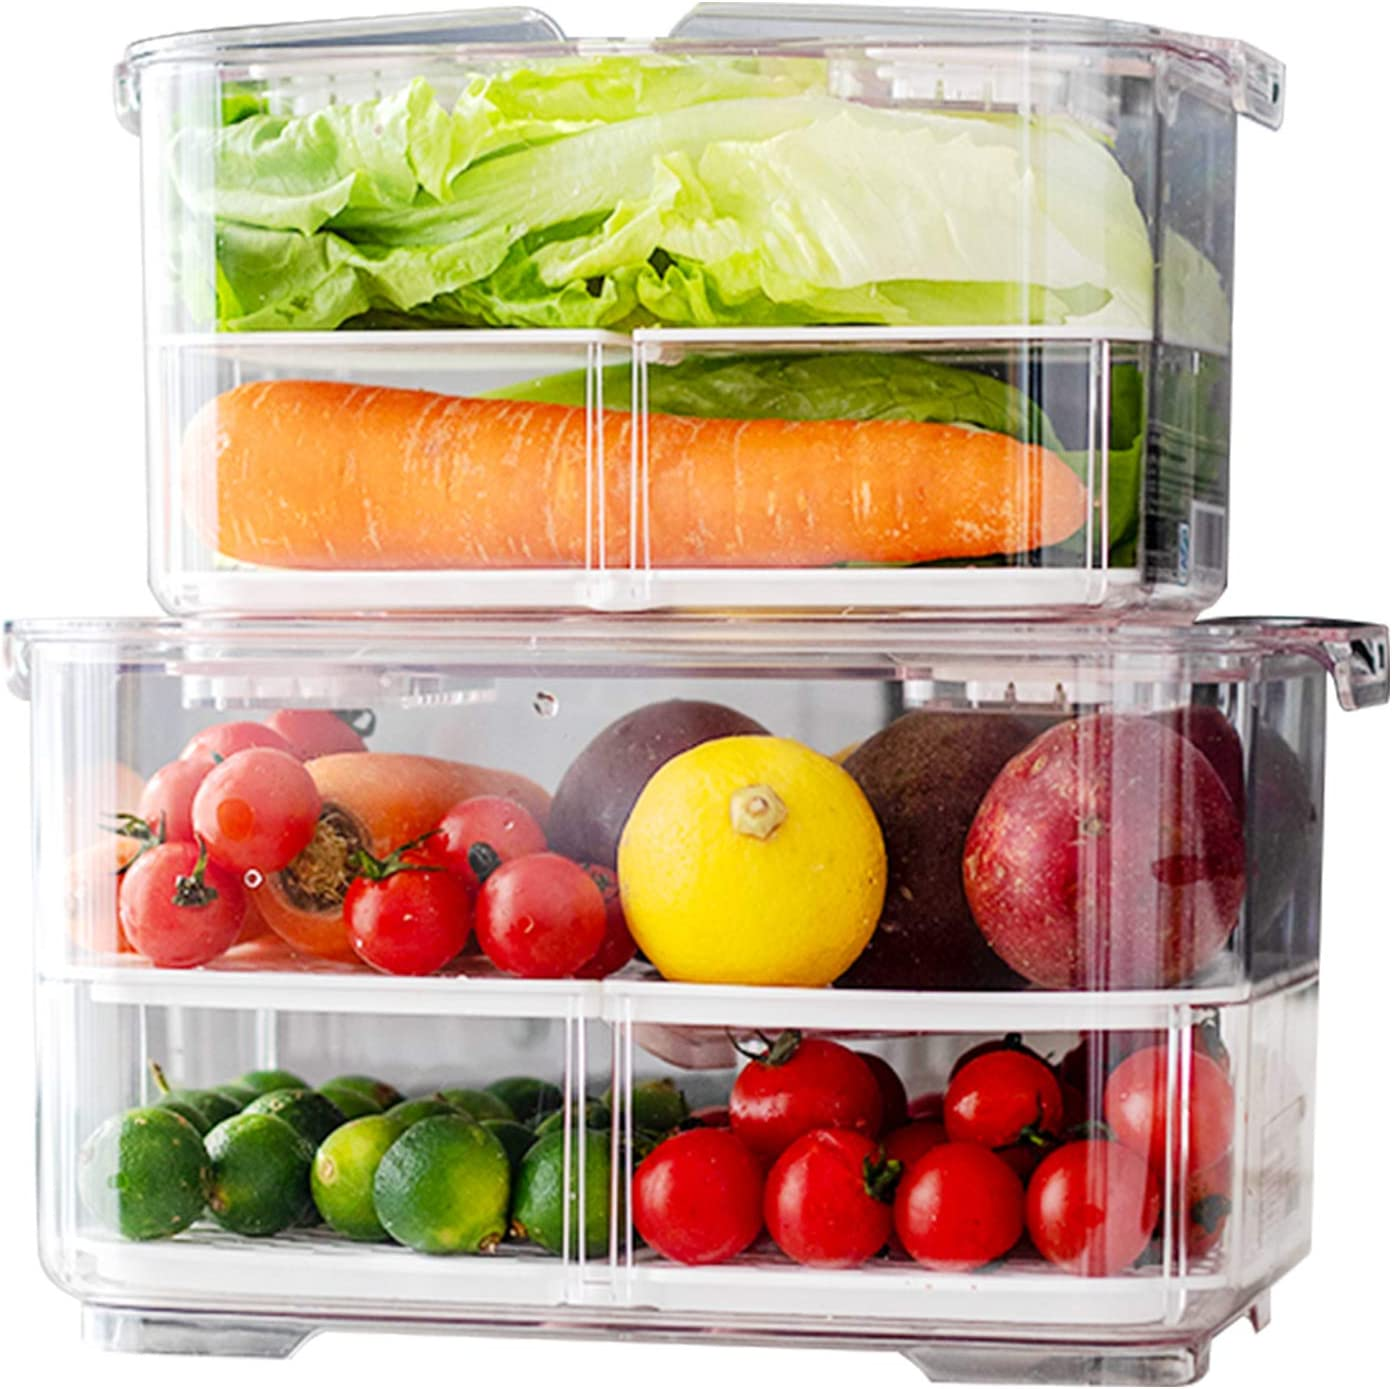 Refrigerator food Some reservation storage container set OFFicial store let fresh store fruits